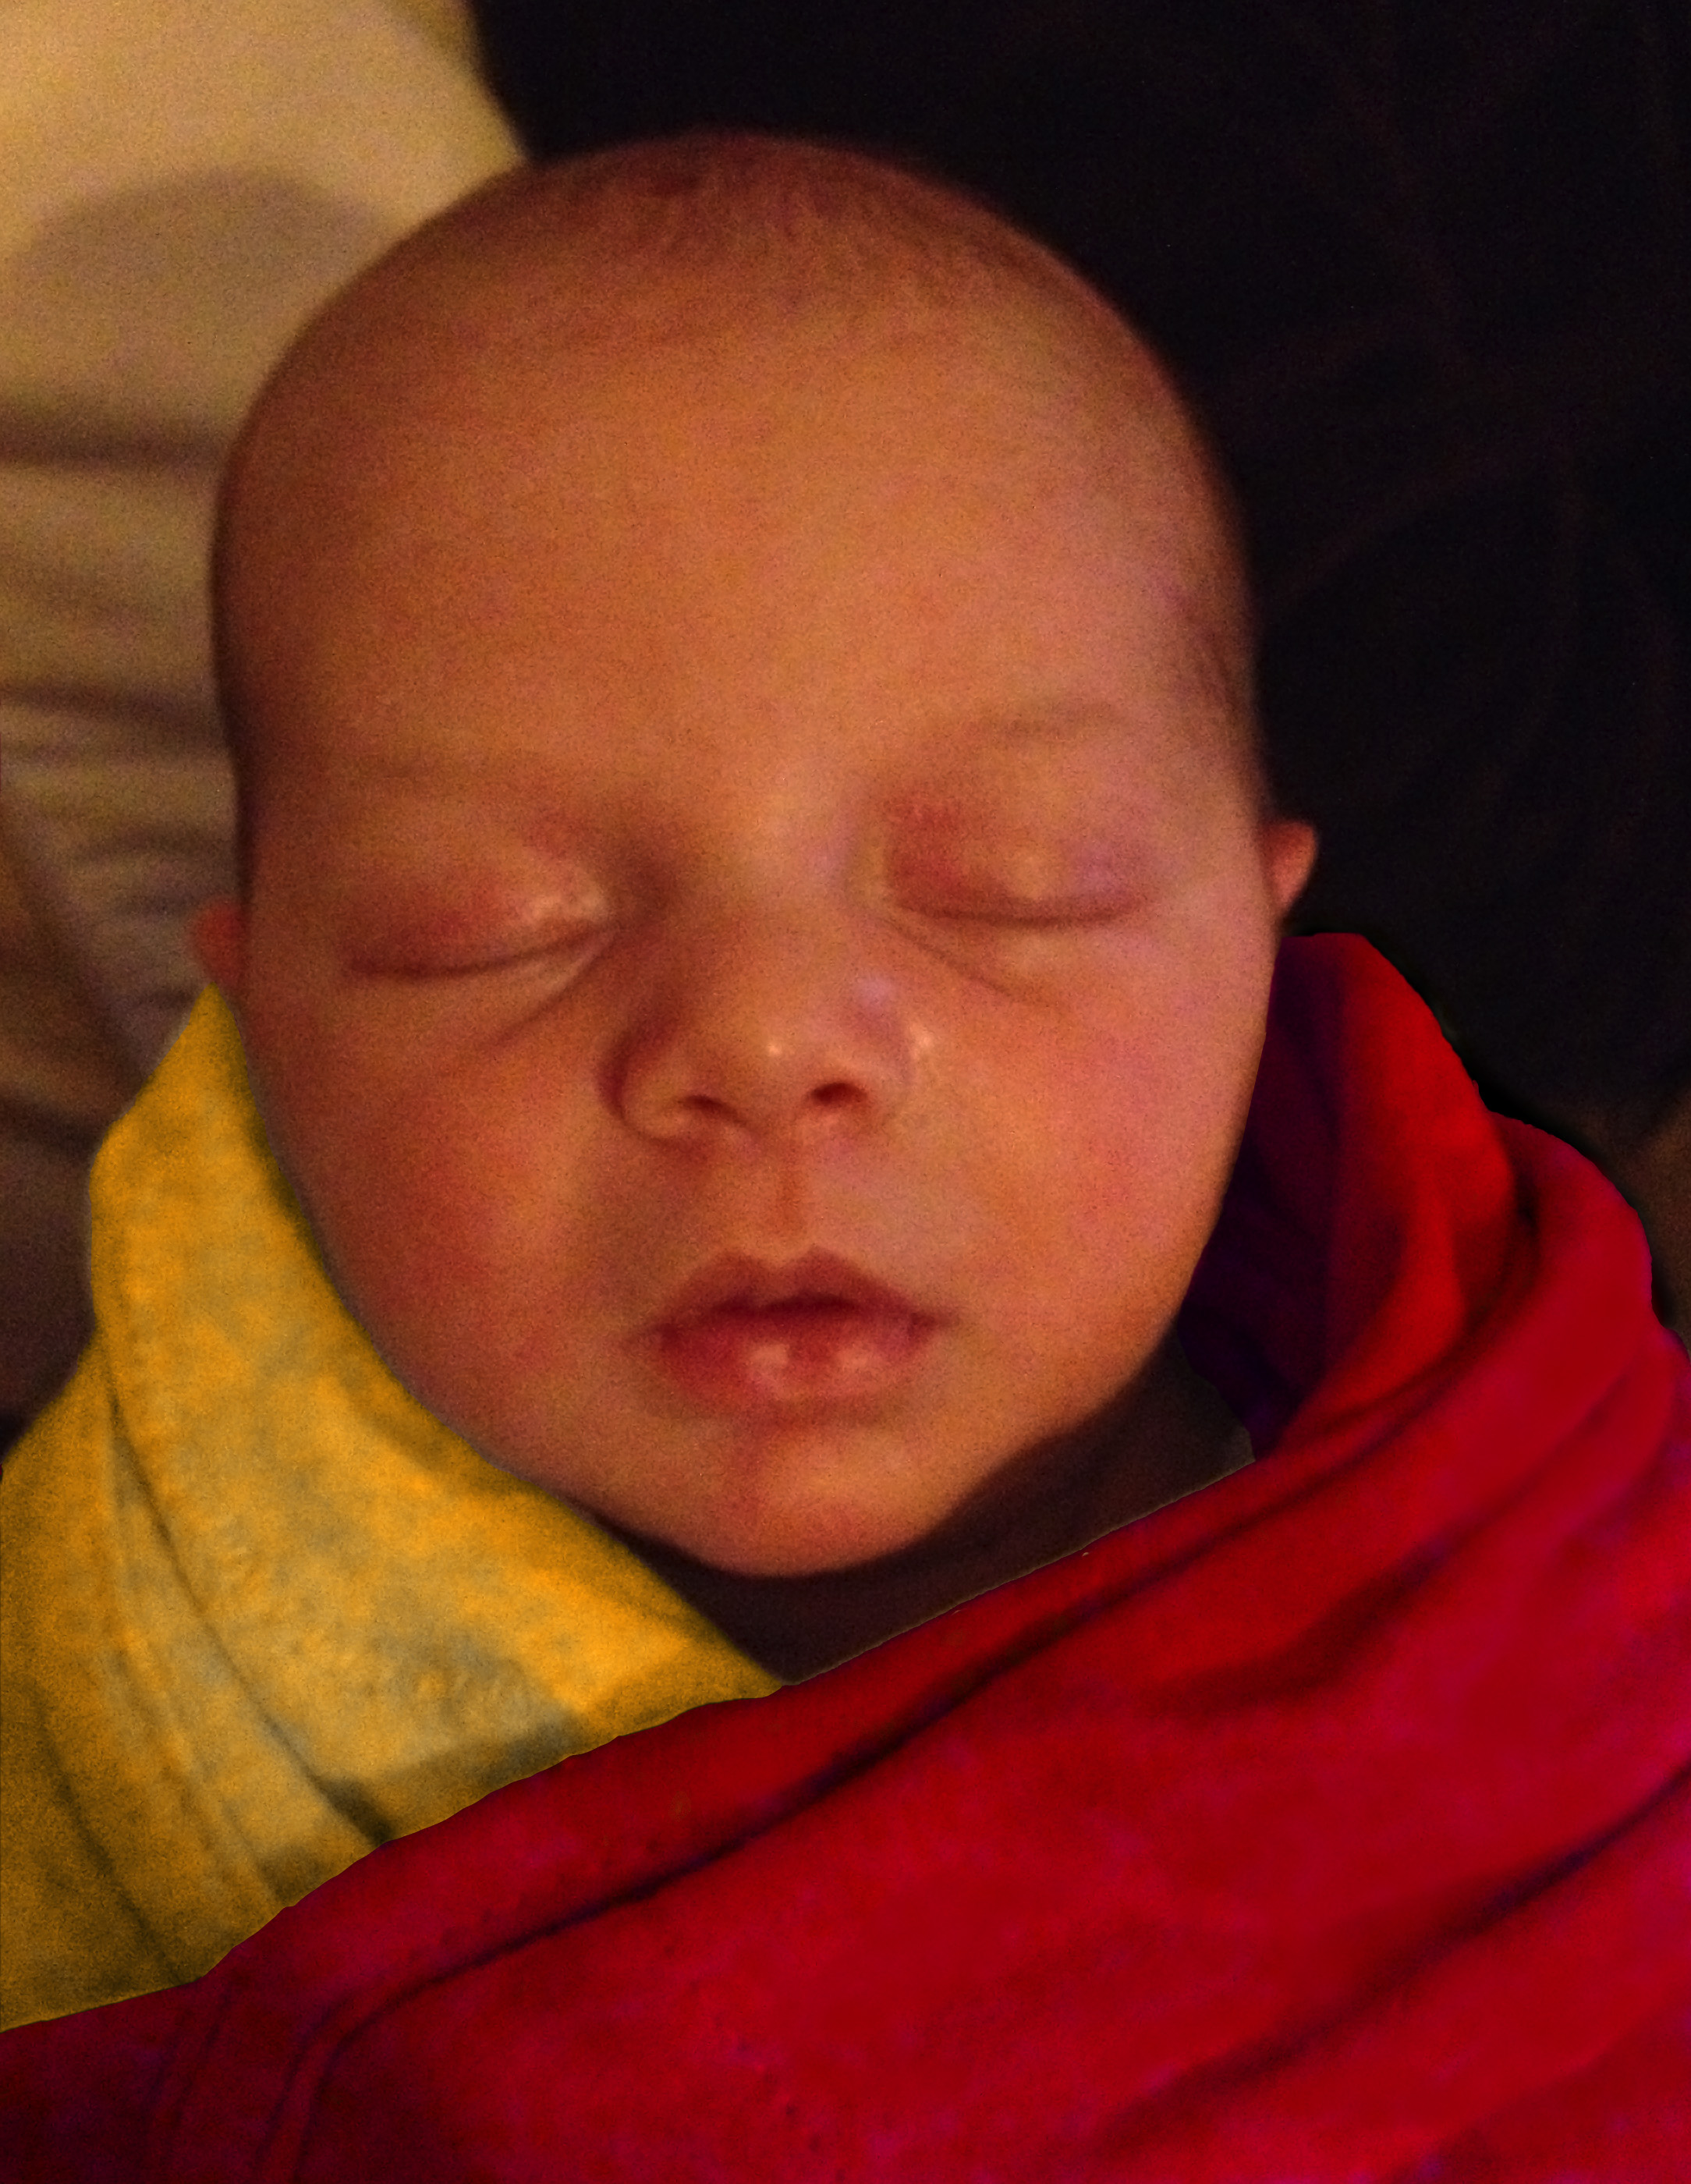 bald baby Sam, swaddled and photoshopped to look like the Dalai Lama in a saffron robe.